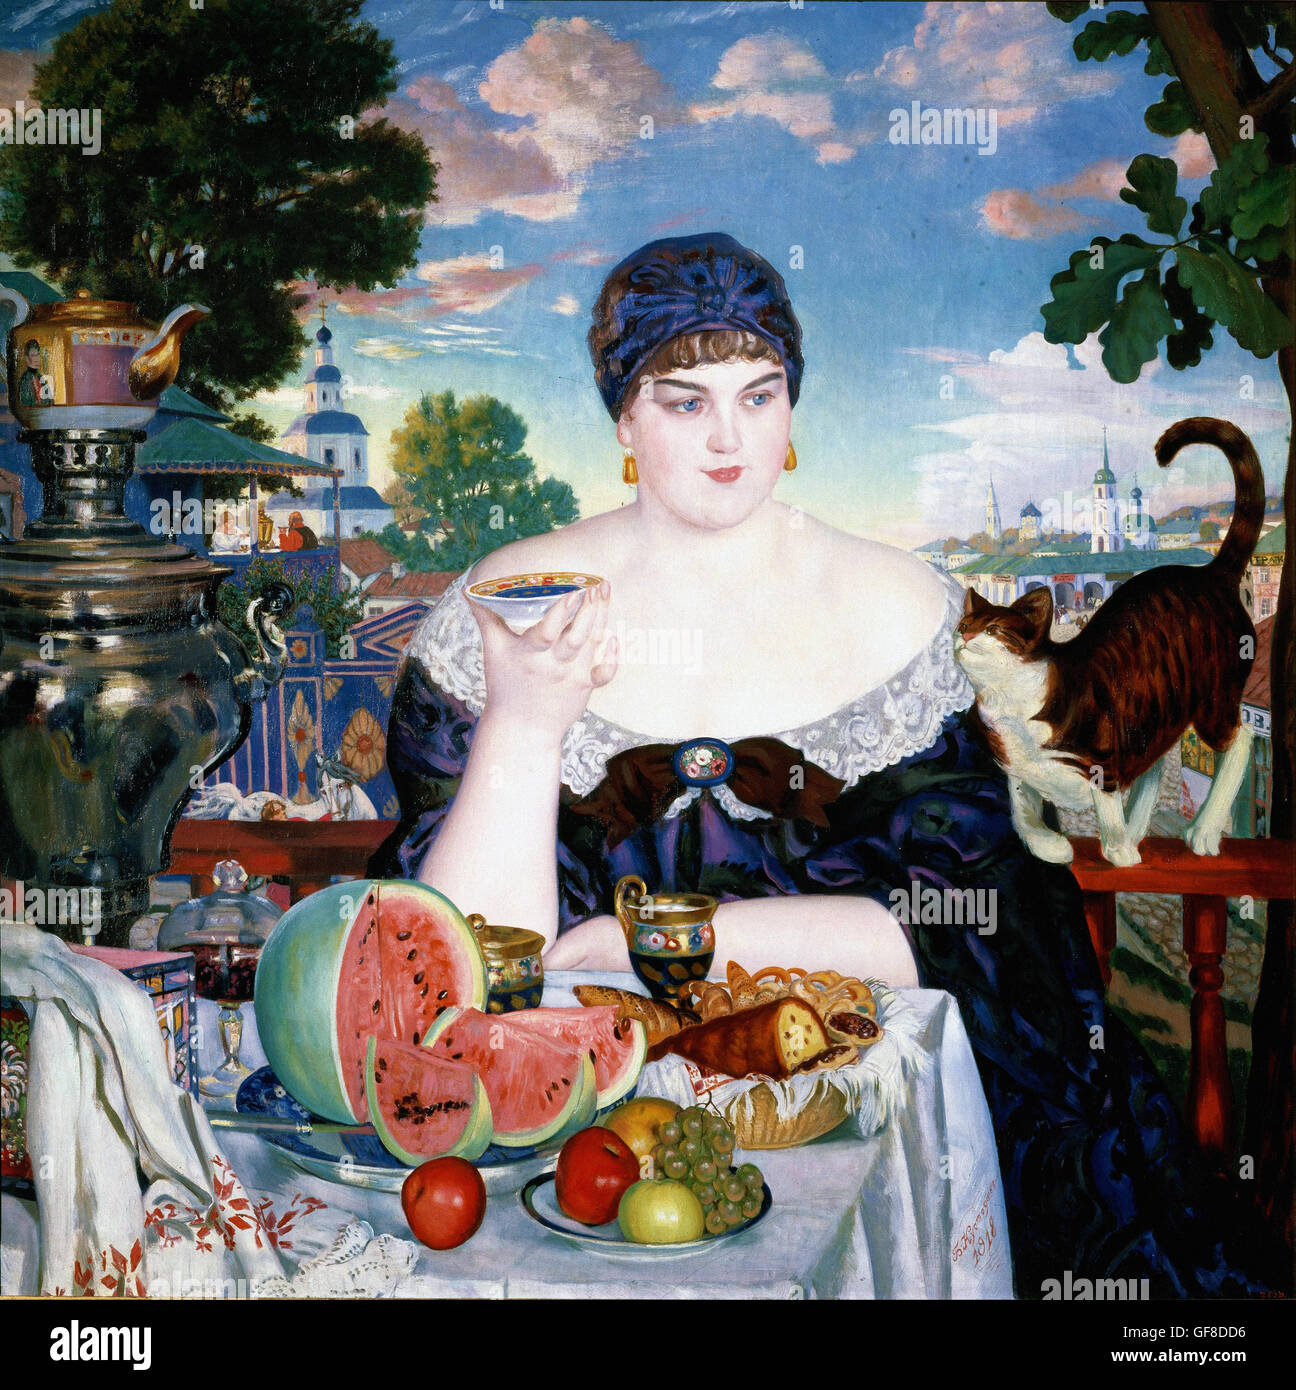 Boris Kustodiev - Merchant's Wife at Tea - Stock Image